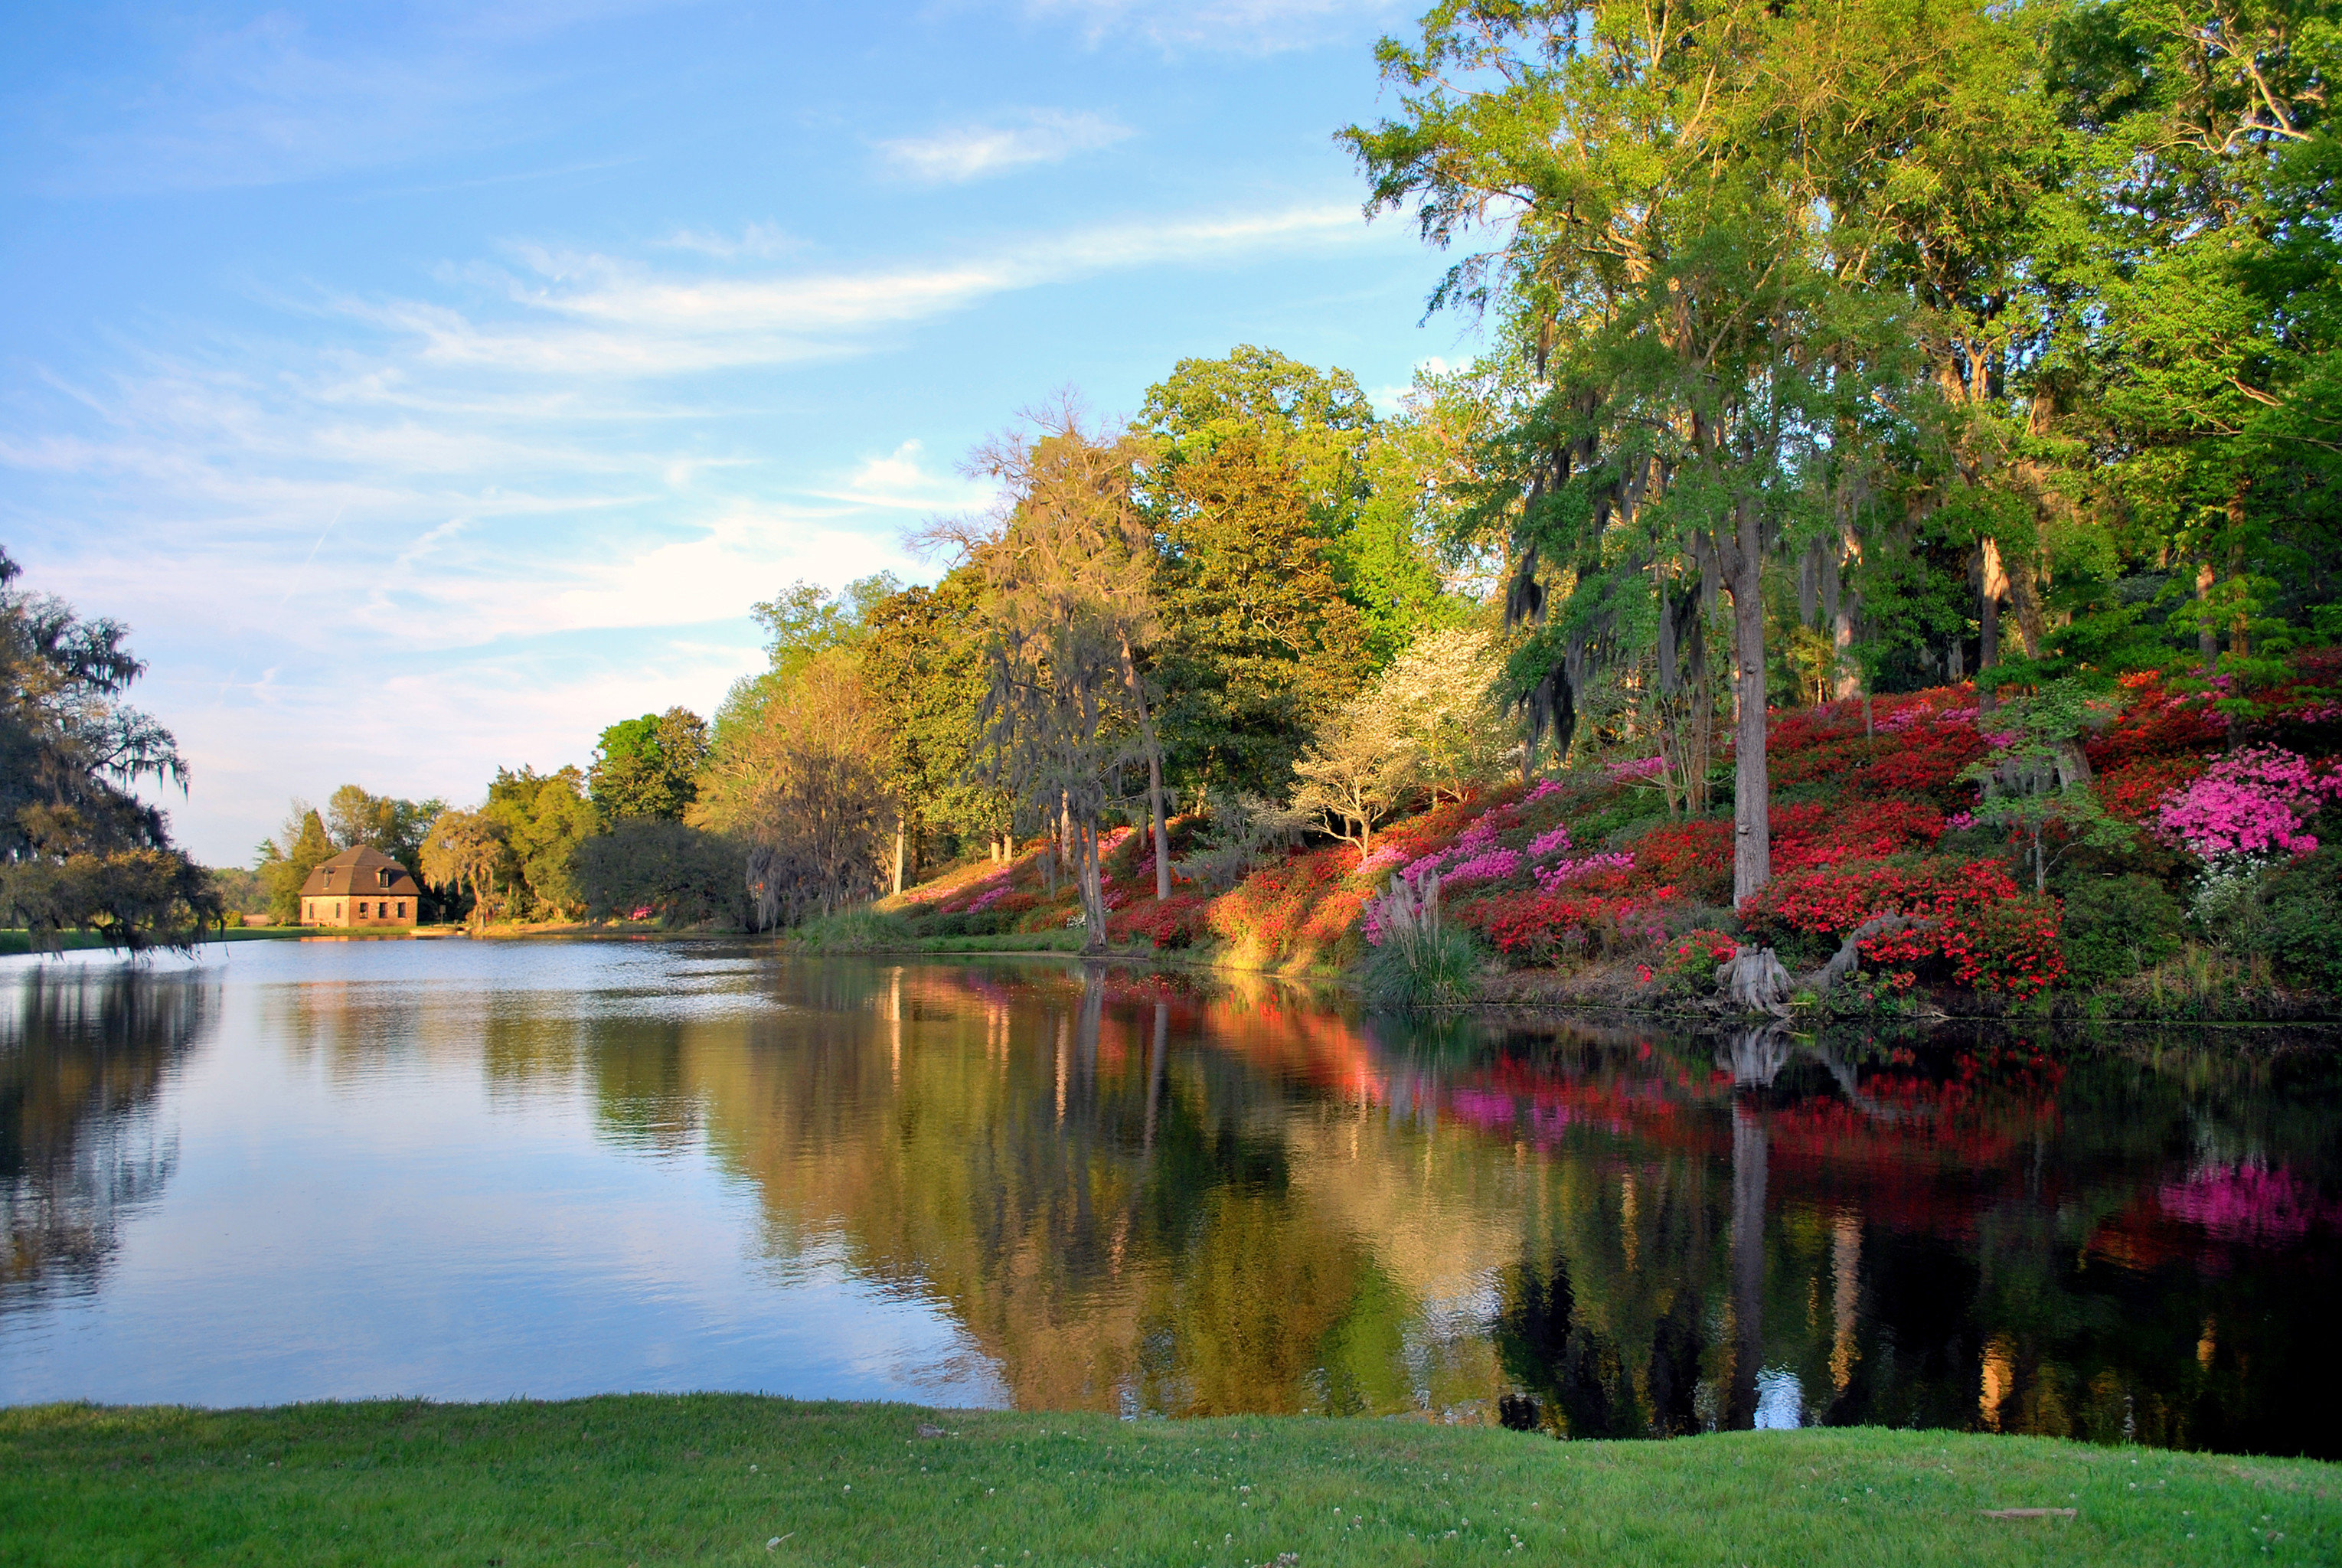 Forest Grounds Outdoors Scenic views Waterfront tree water sky grass Nature pond River Lake autumn botany plant season leaf woody plant Garden park flower landscape woodland surrounded